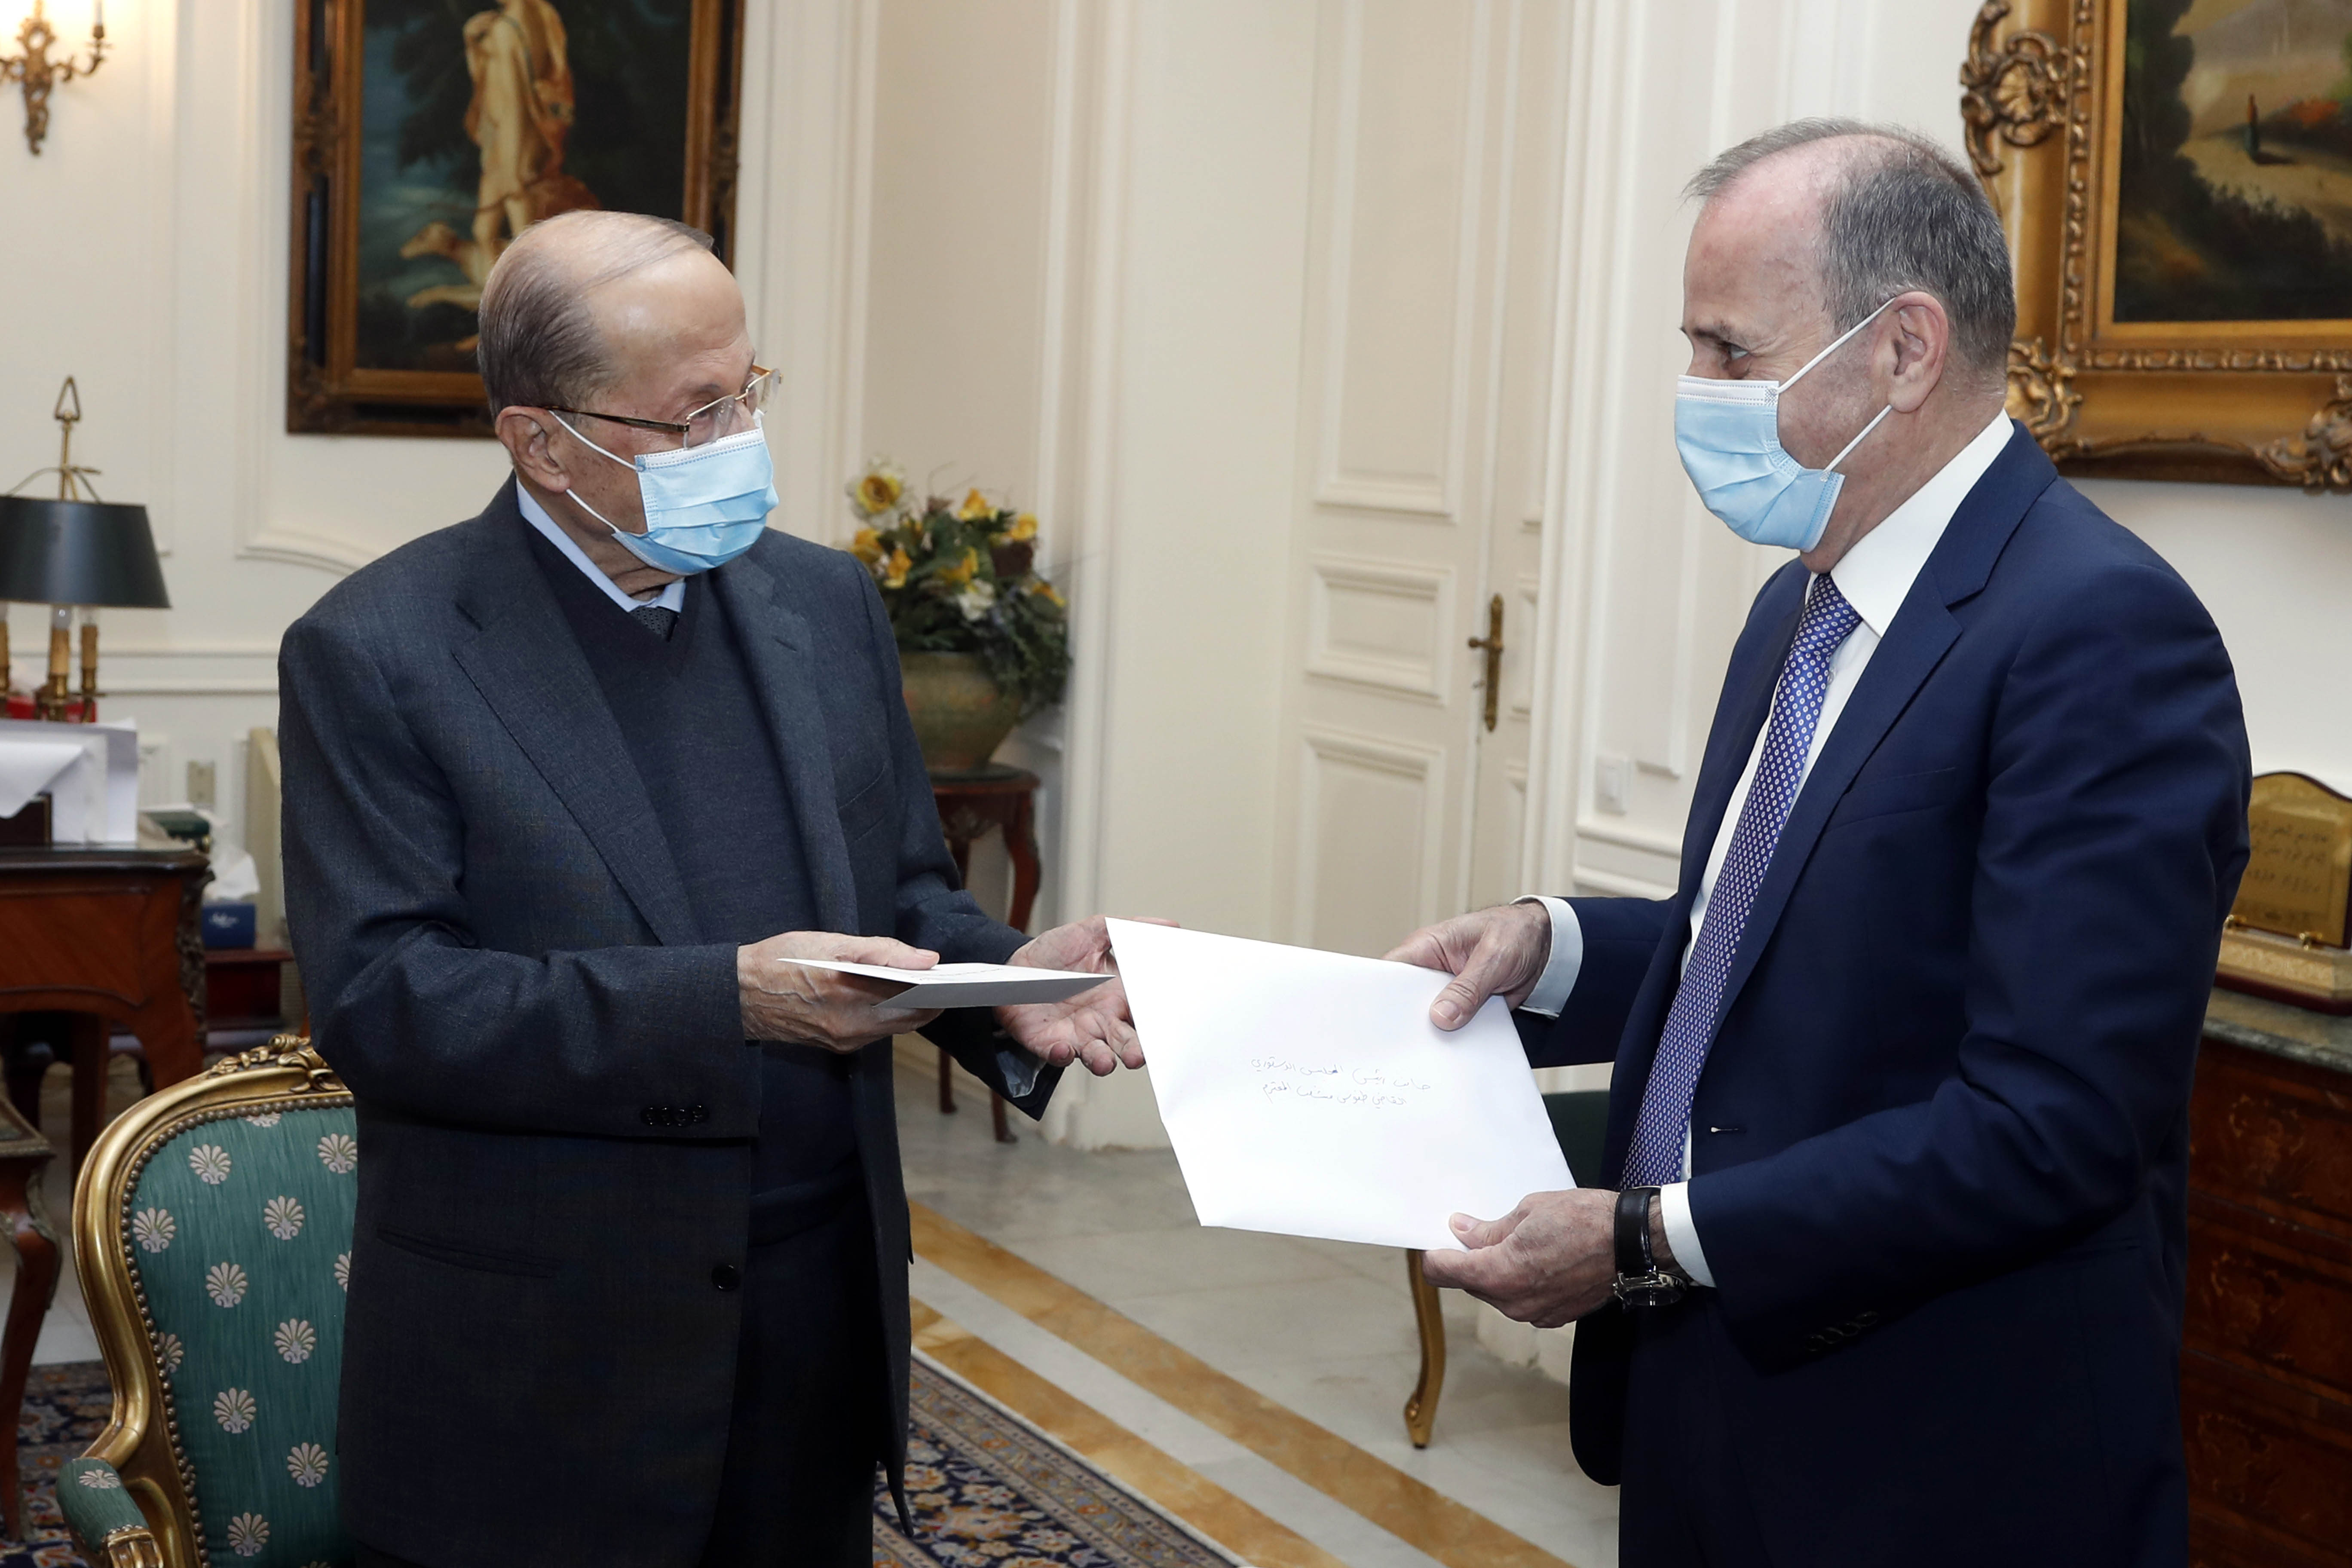 President Aoun visited the Constitutional Council